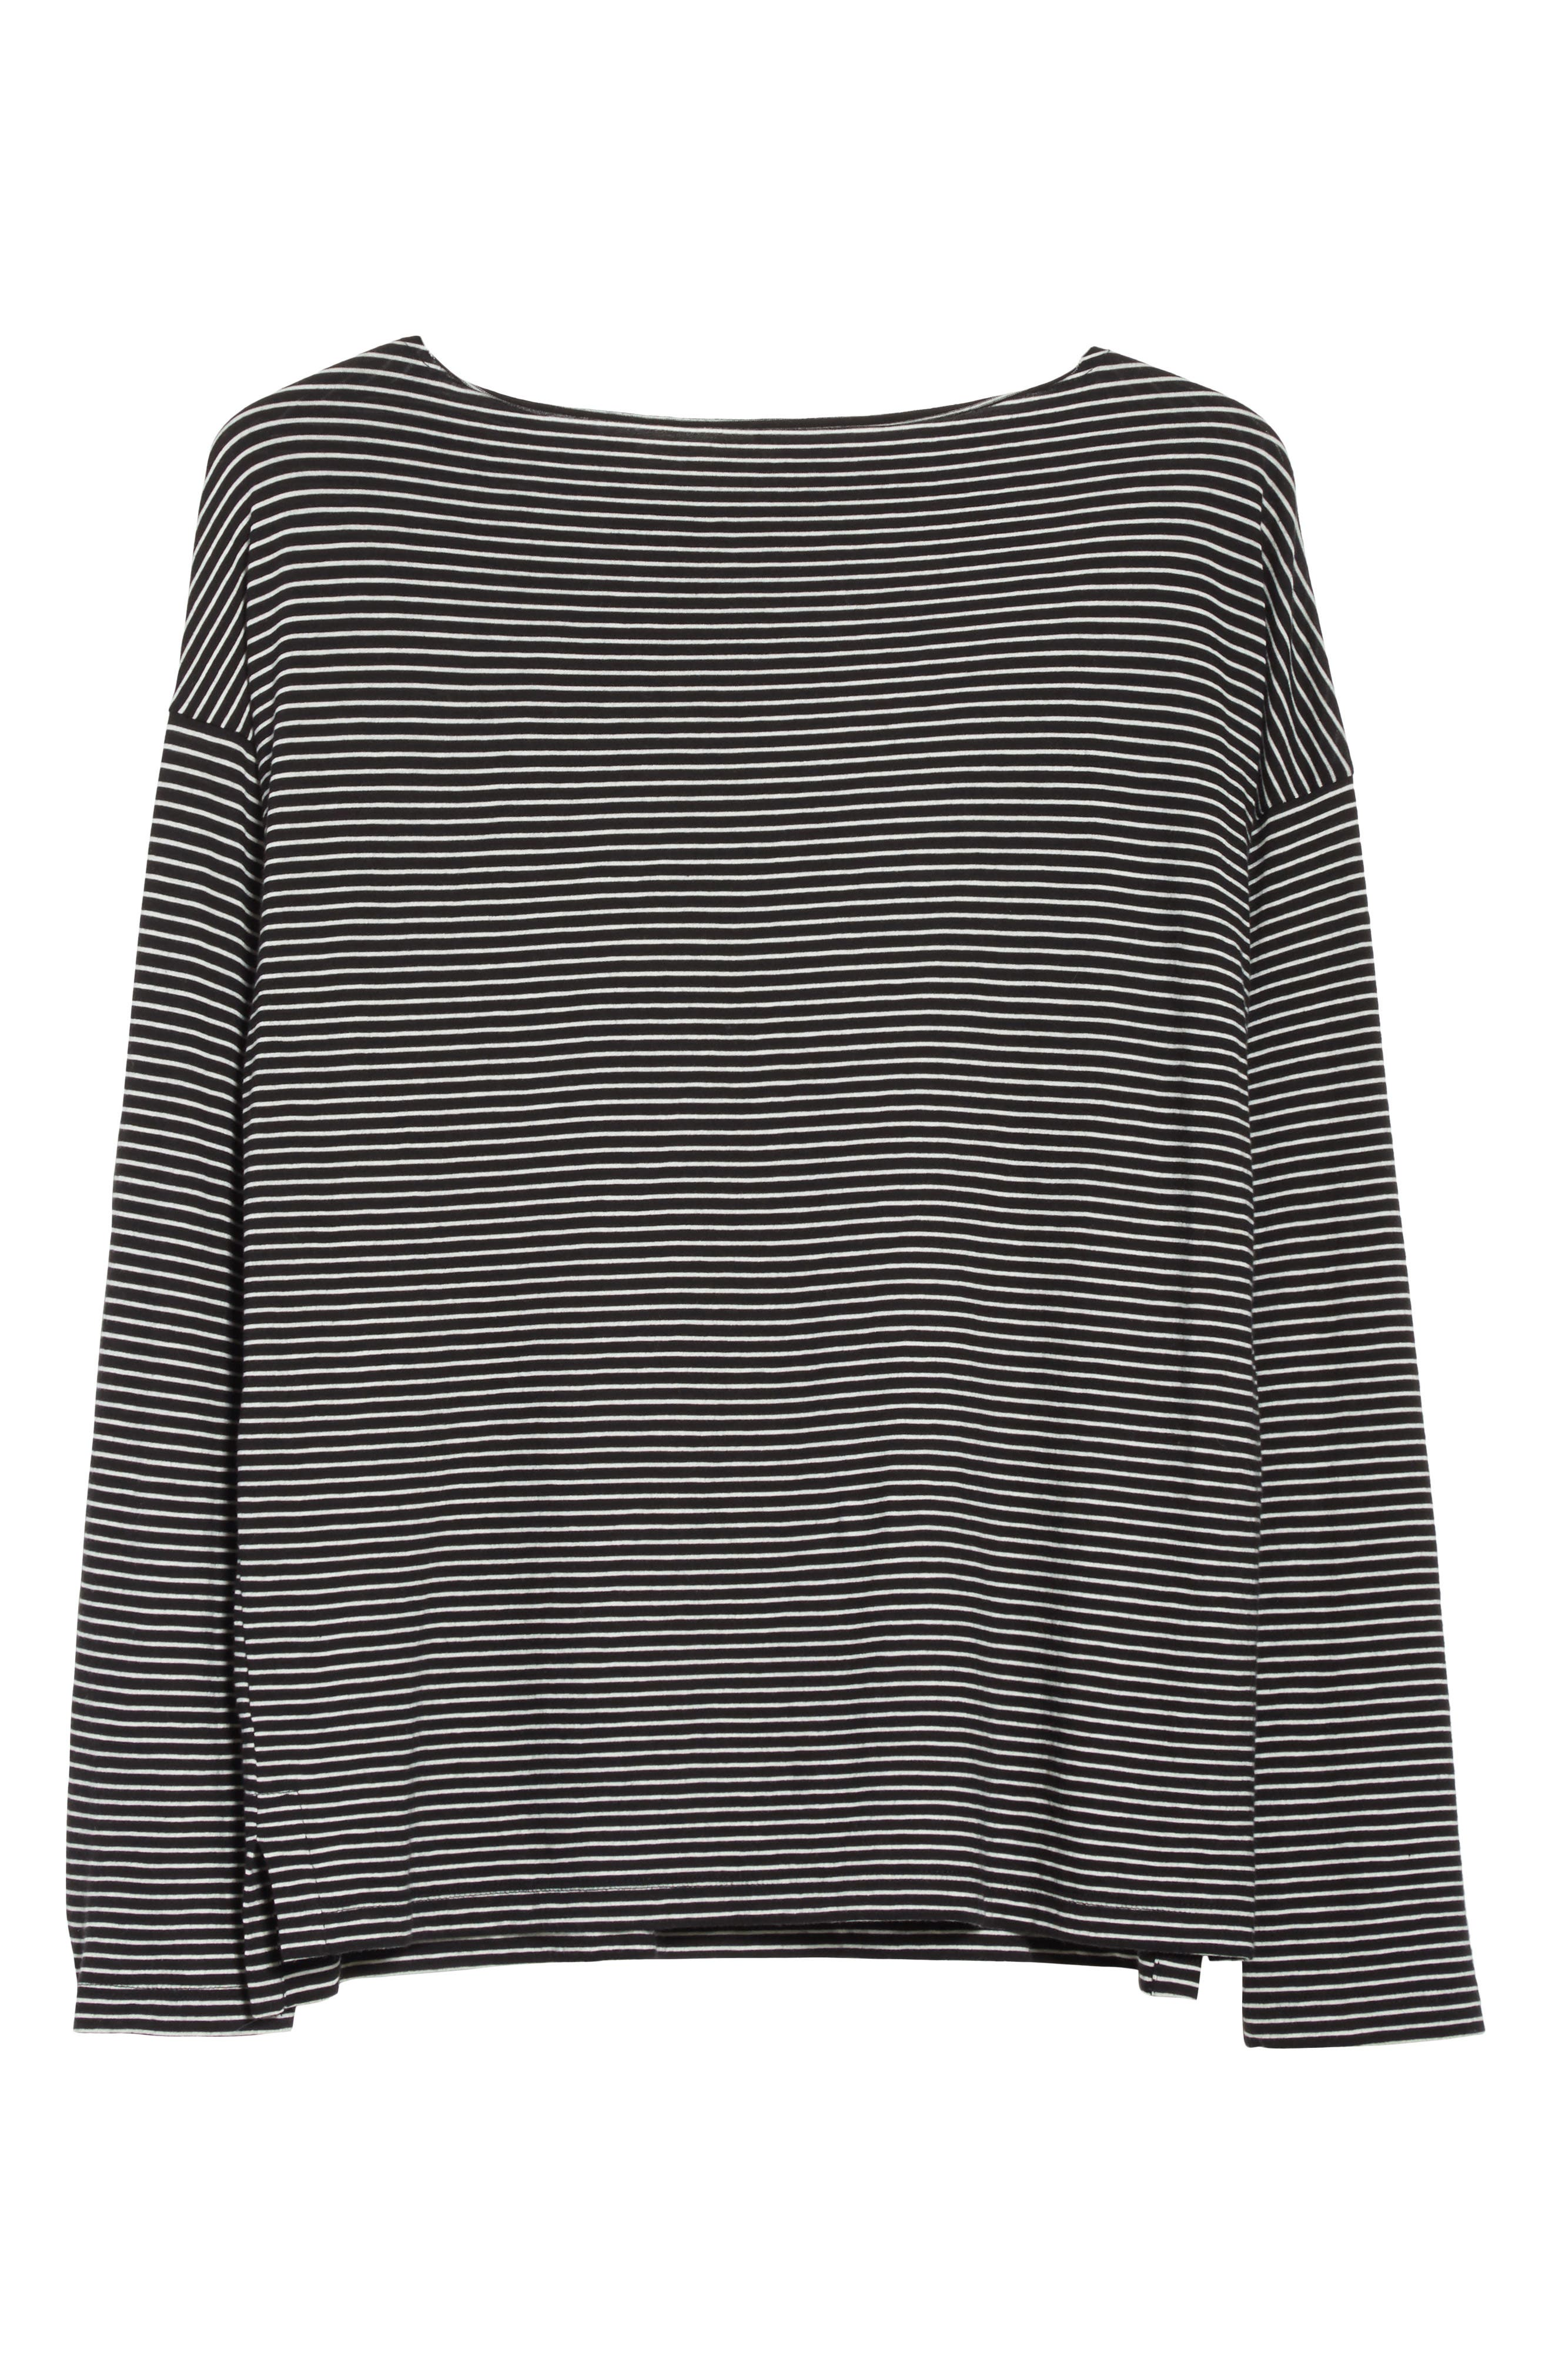 Stripe Boatneck Tee,                             Alternate thumbnail 6, color,                             Black/ Vanilla